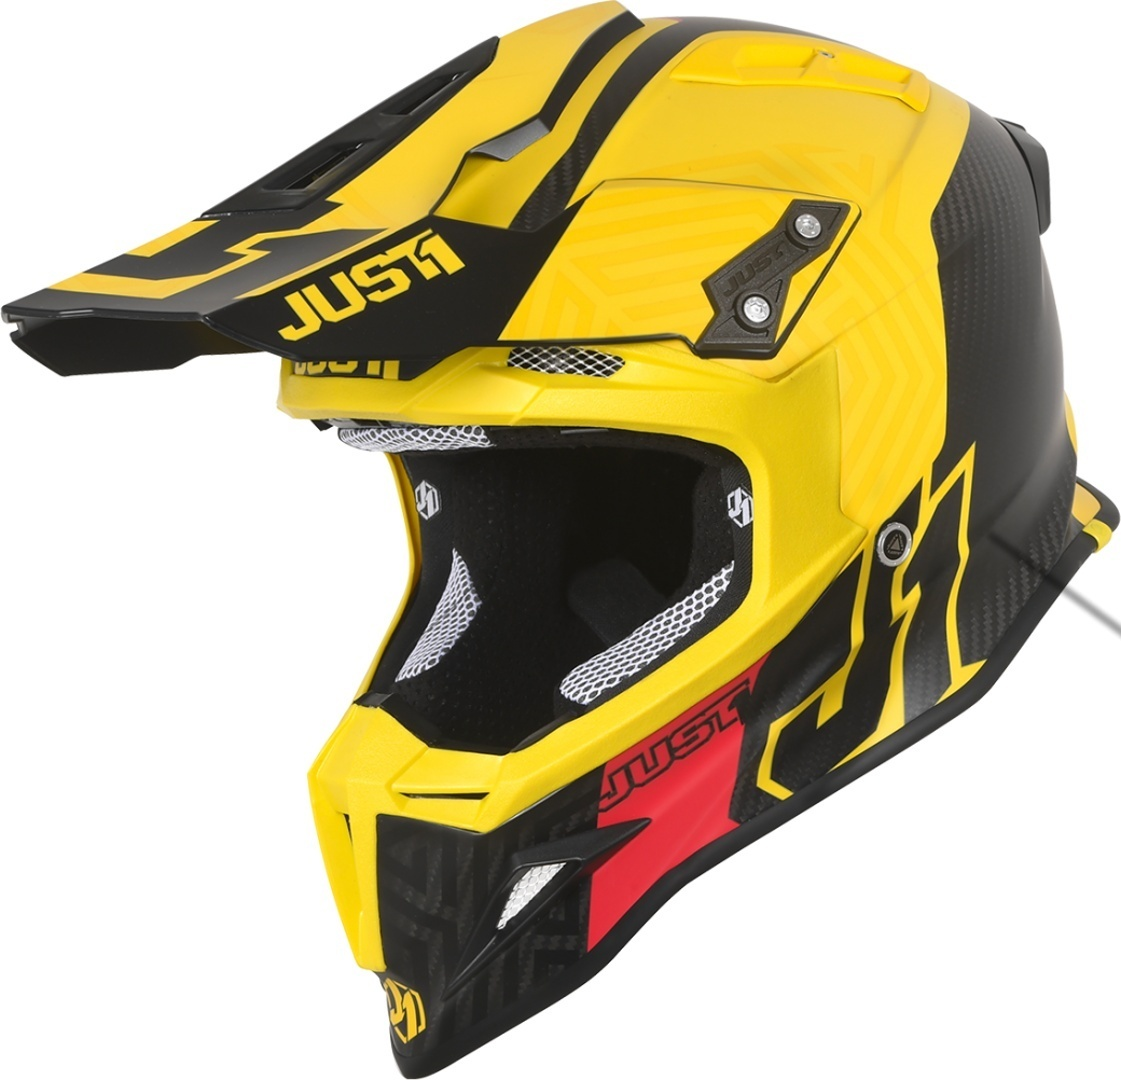 Just1 J12 Syncro Carbon Motocross Helm, schwarz-gelb, Größe L, schwarz-gelb, Größe L